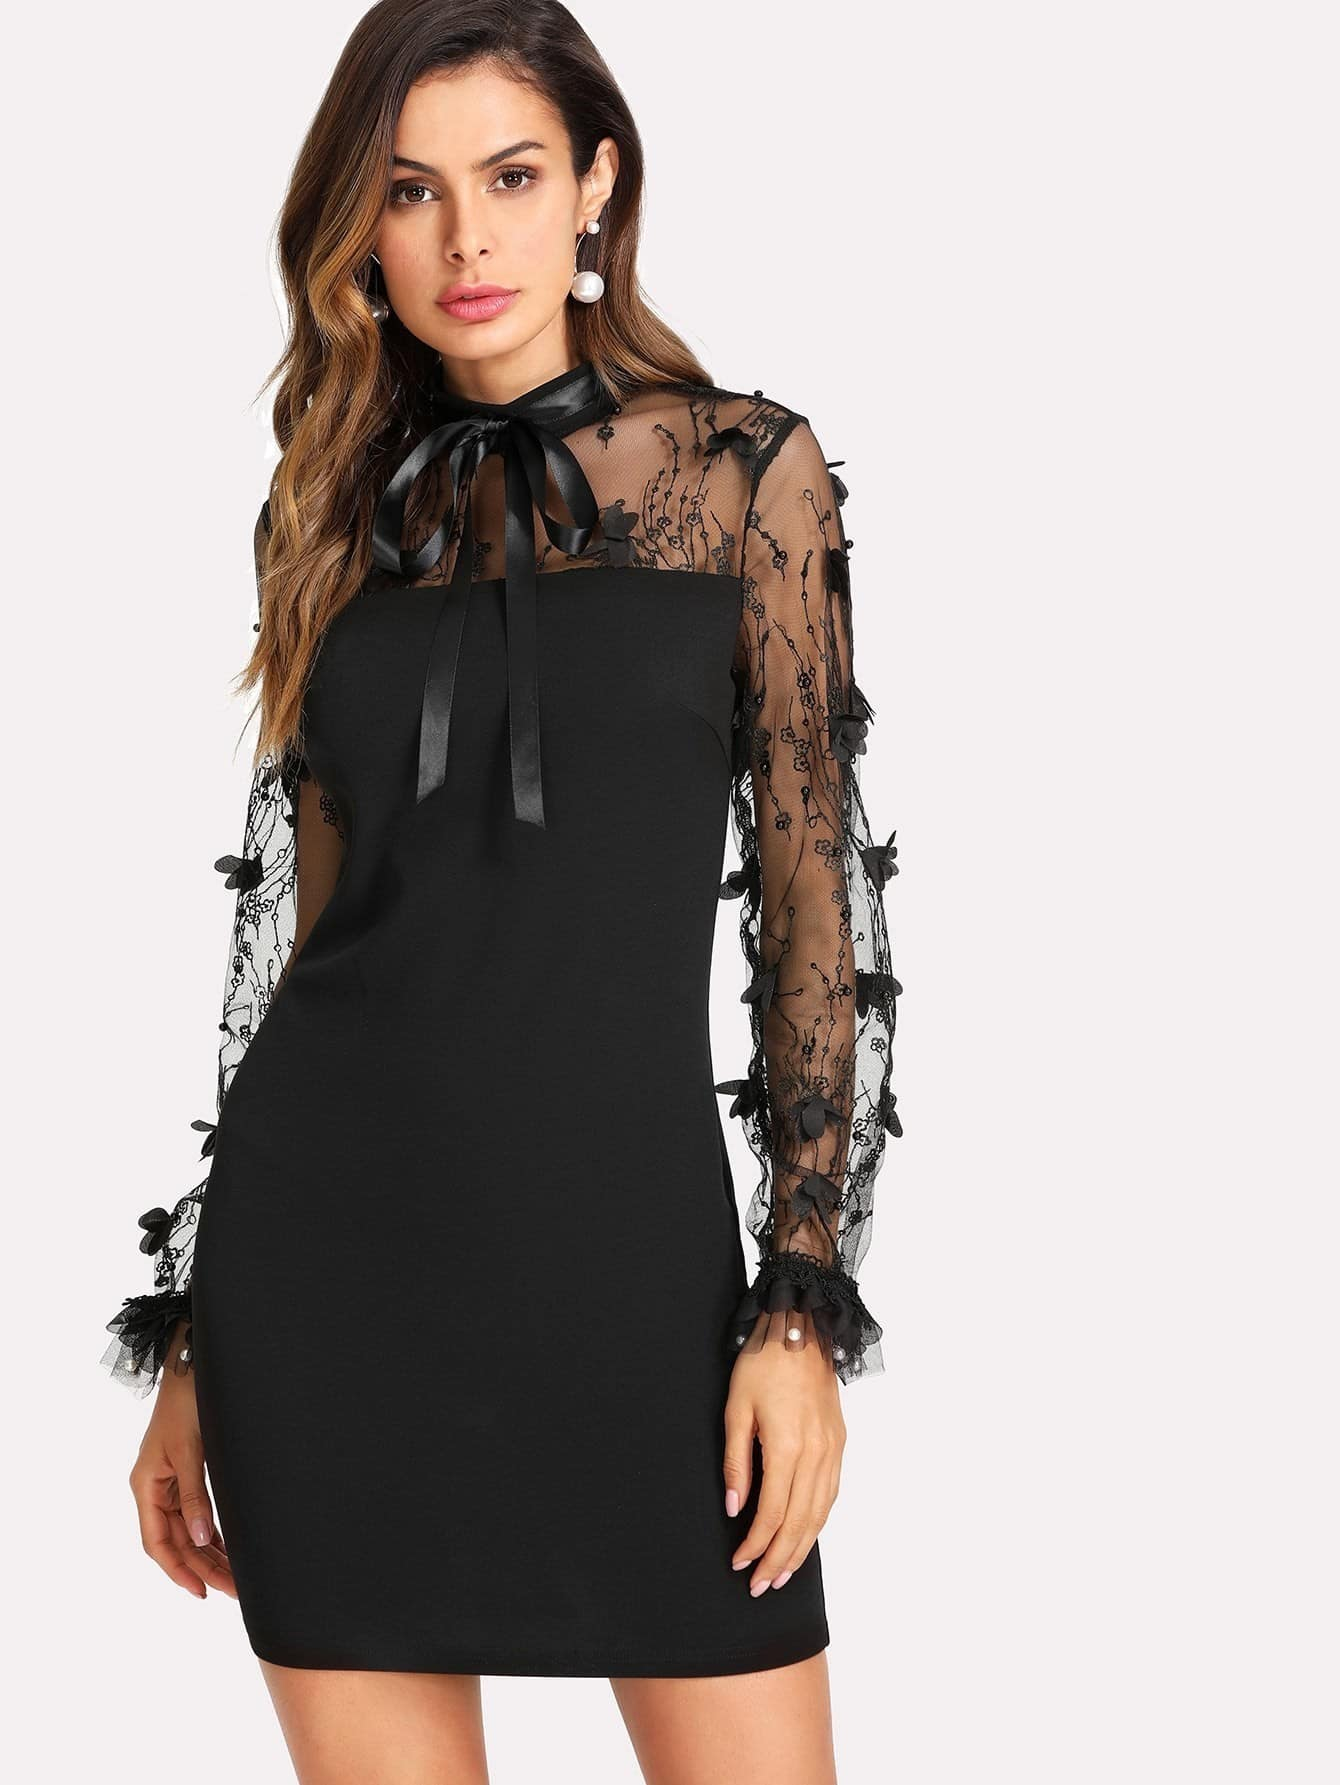 Ribbon Tie Neck Embroidered Mesh Sleeve Dress embroidery mesh ribbon tie dress